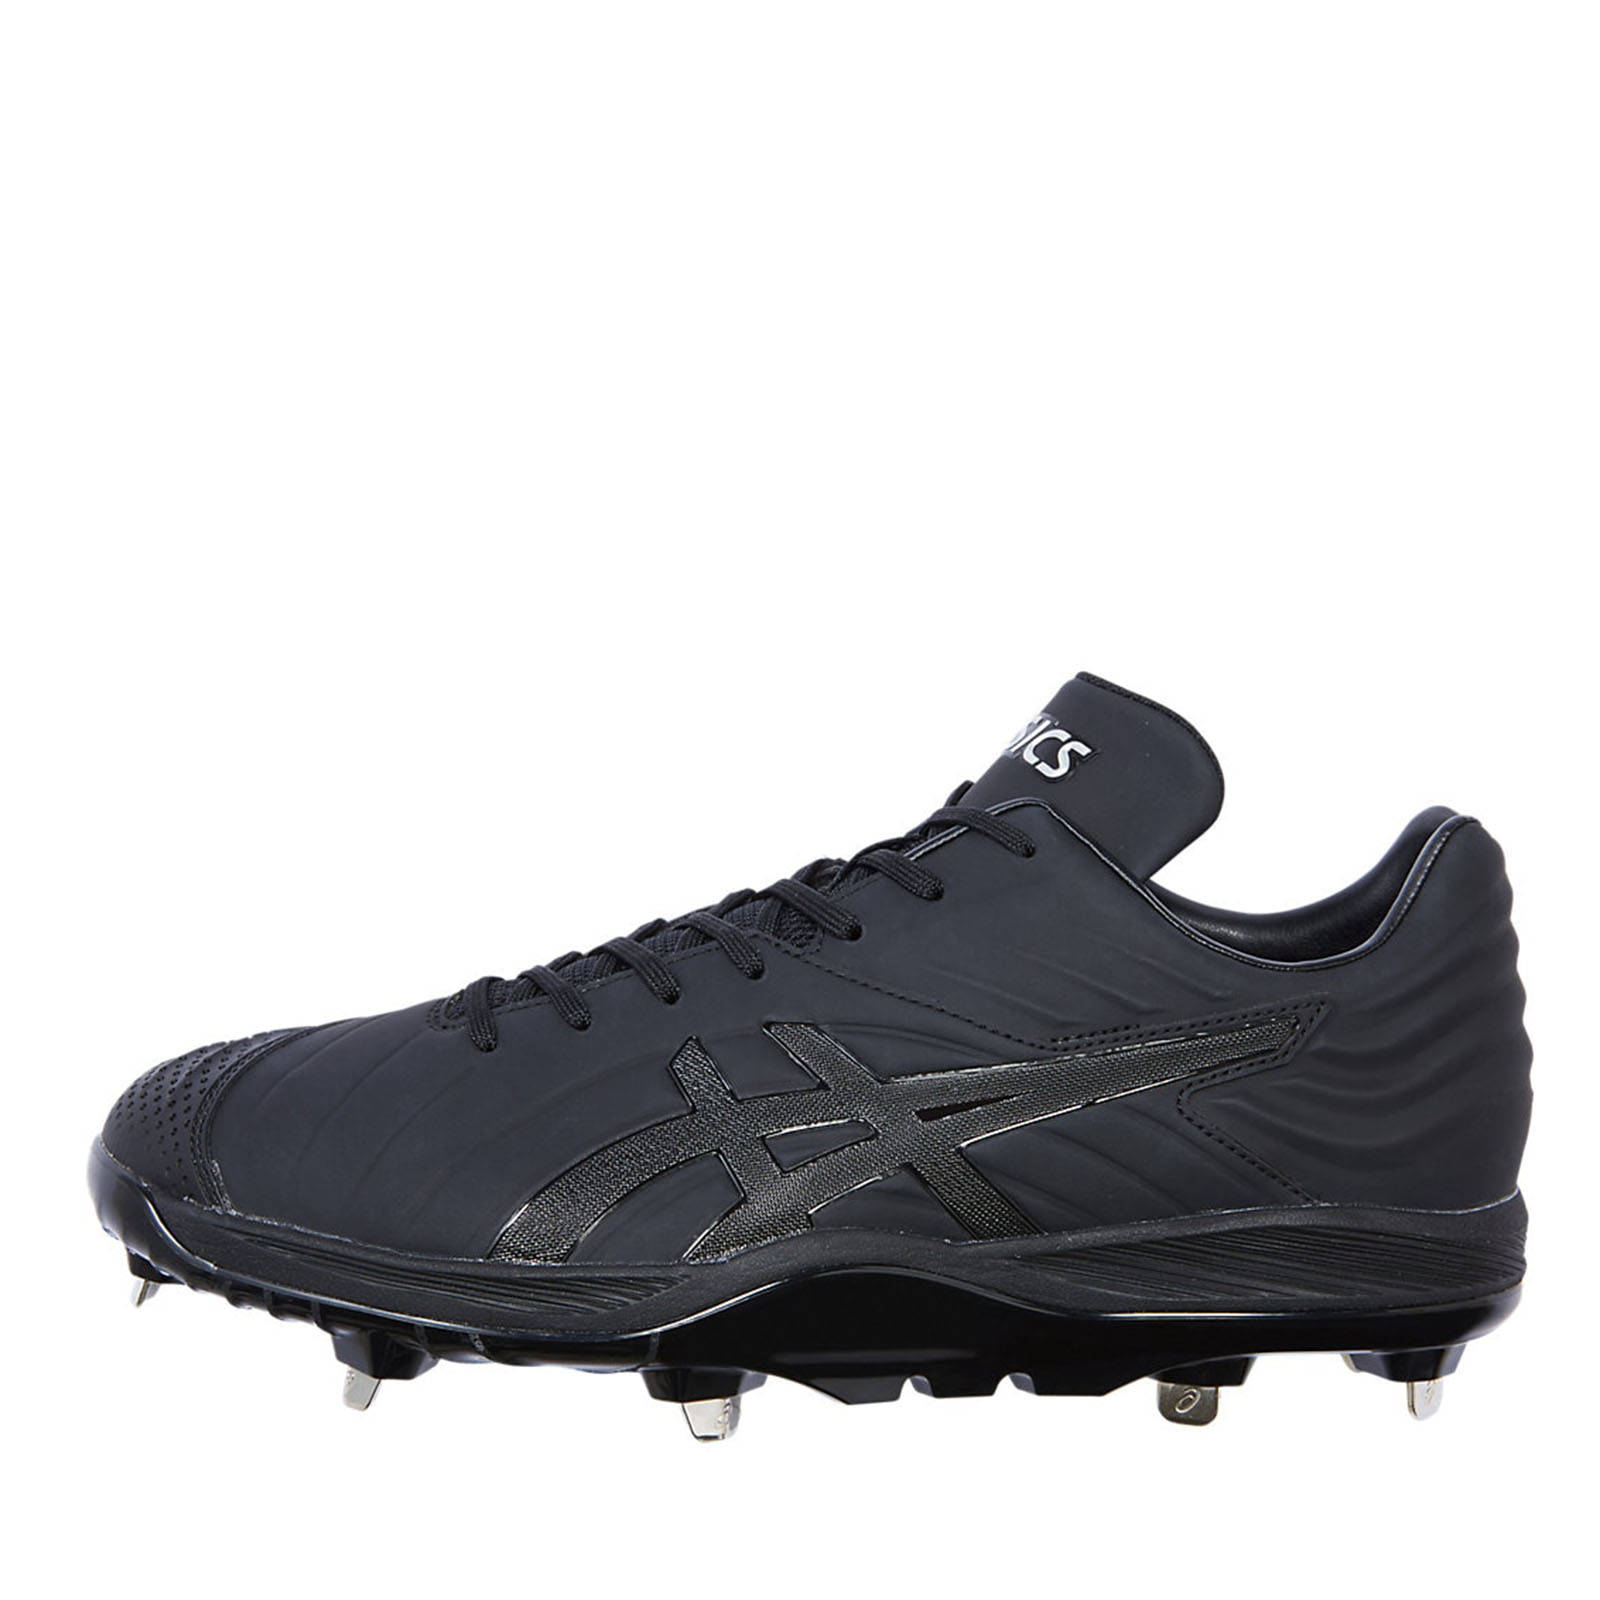 Asics I Stand SM [1121A002-001] Men Metal Baseball Cleats Black/Black